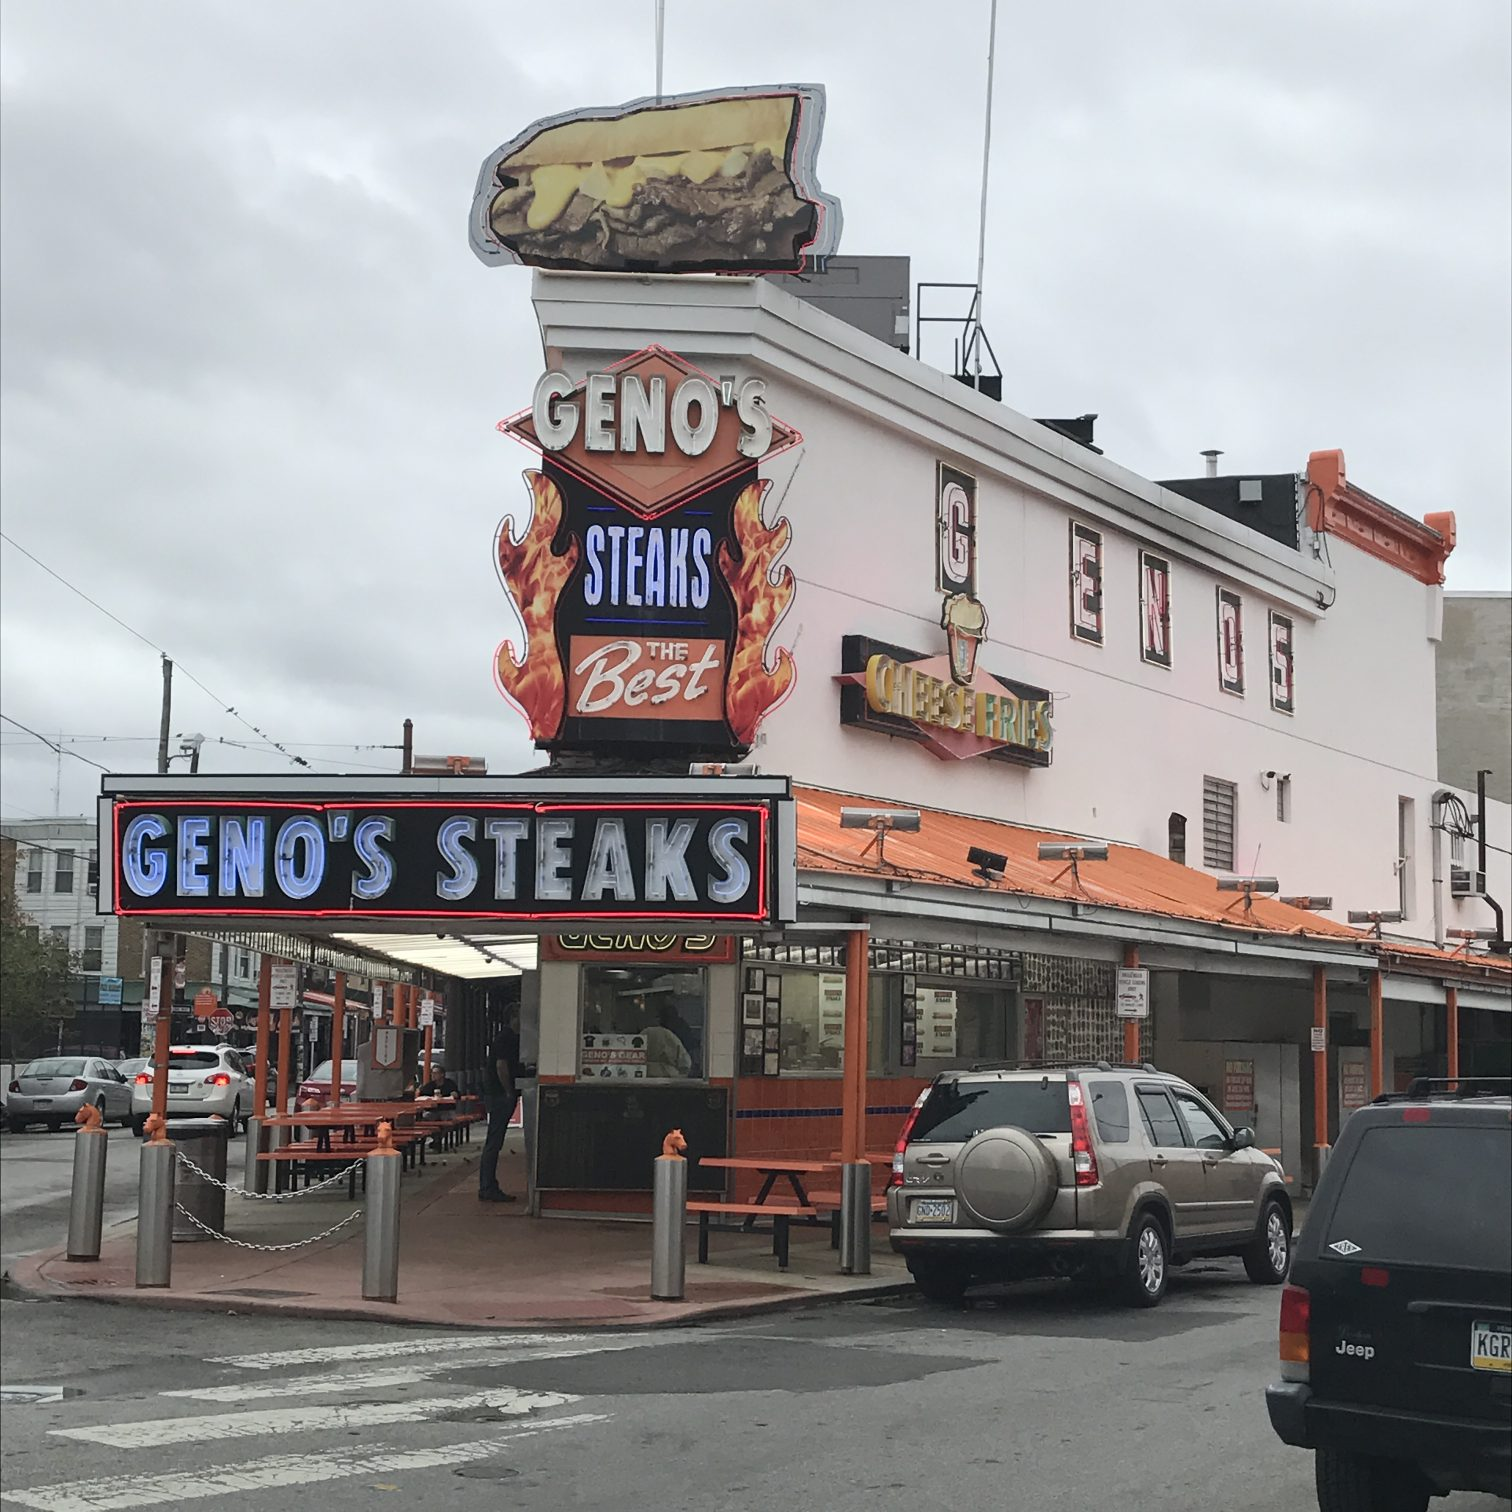 It's no Philadelphia secret that visitors flock for our cheesesteaks.